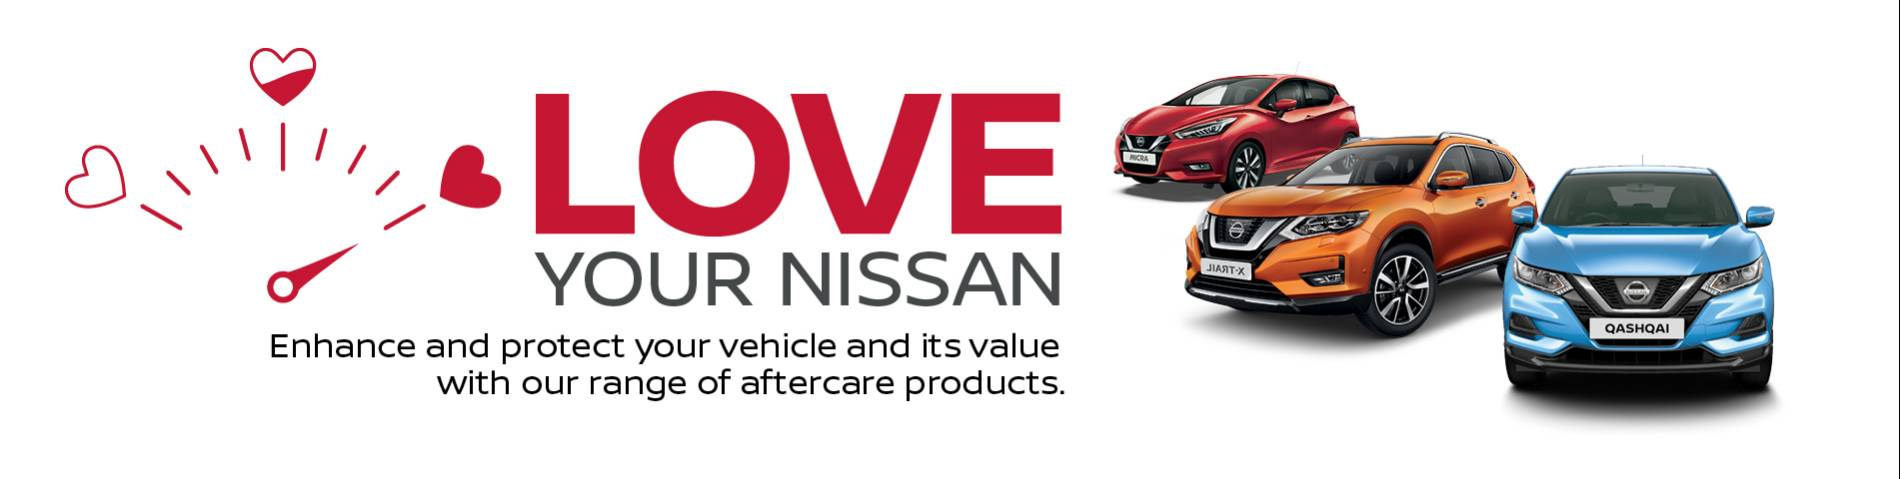 New Love your Nissan